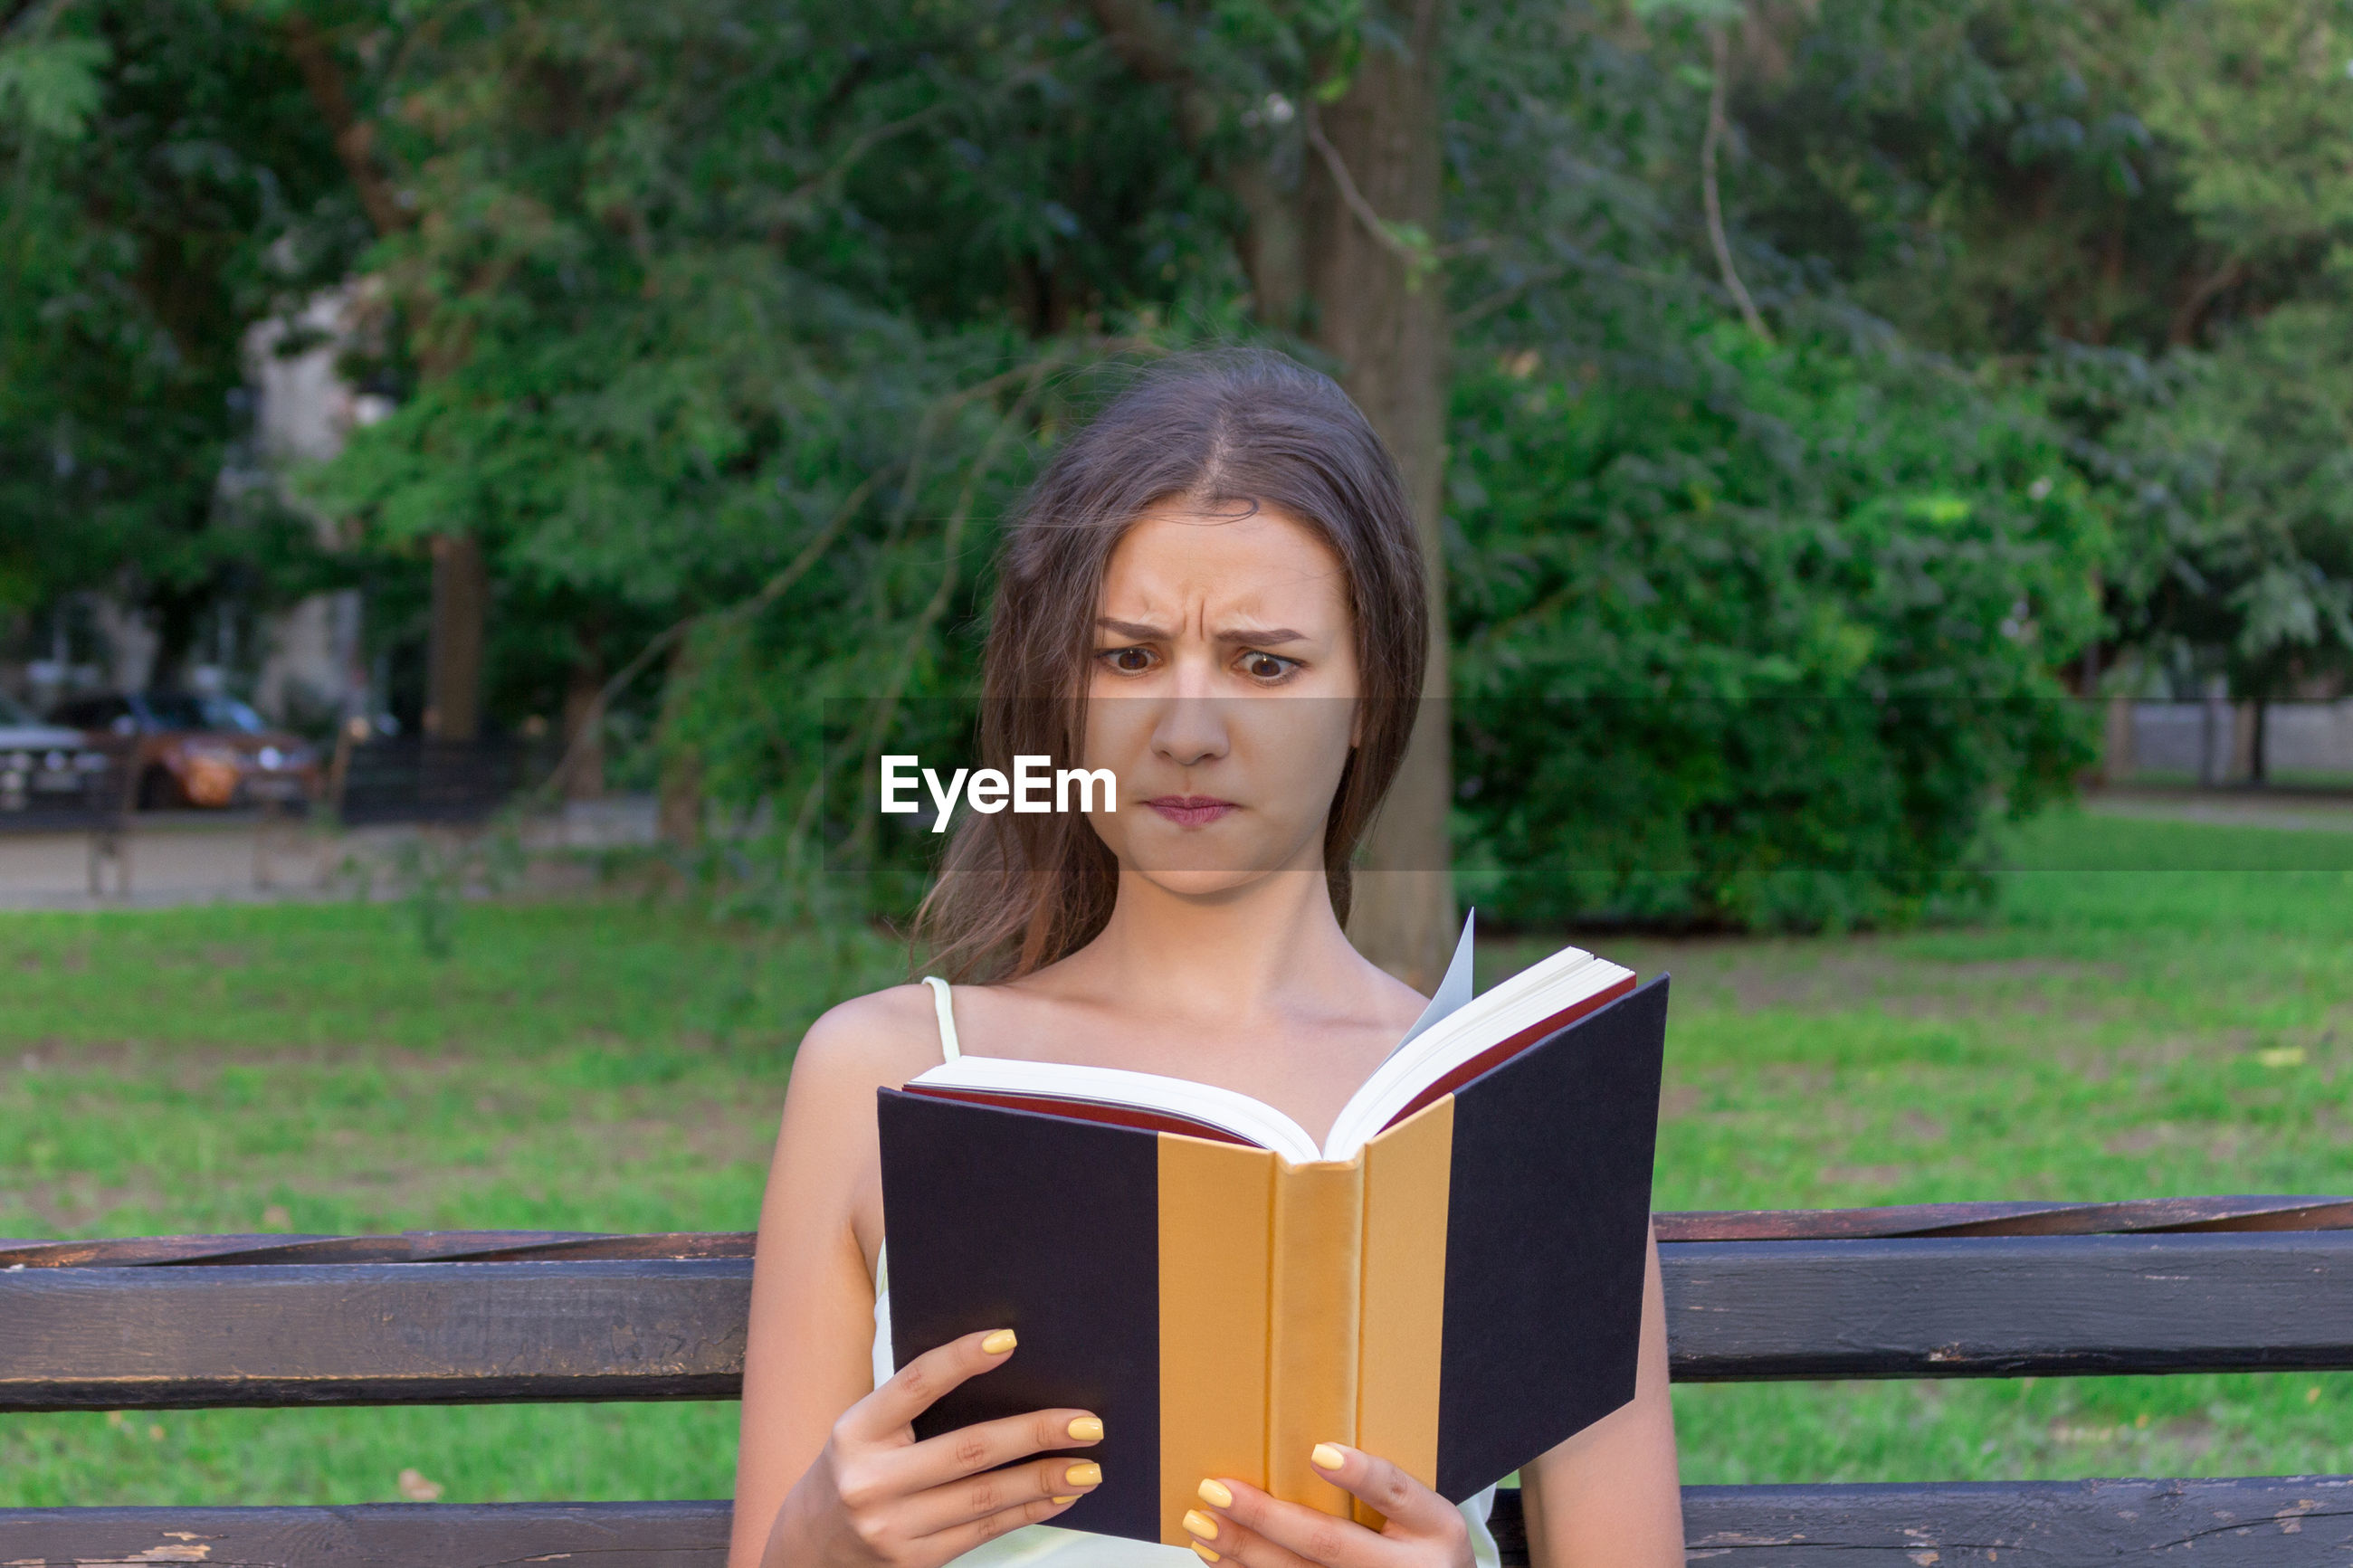 Shocked young woman reading book while sitting on bench in park